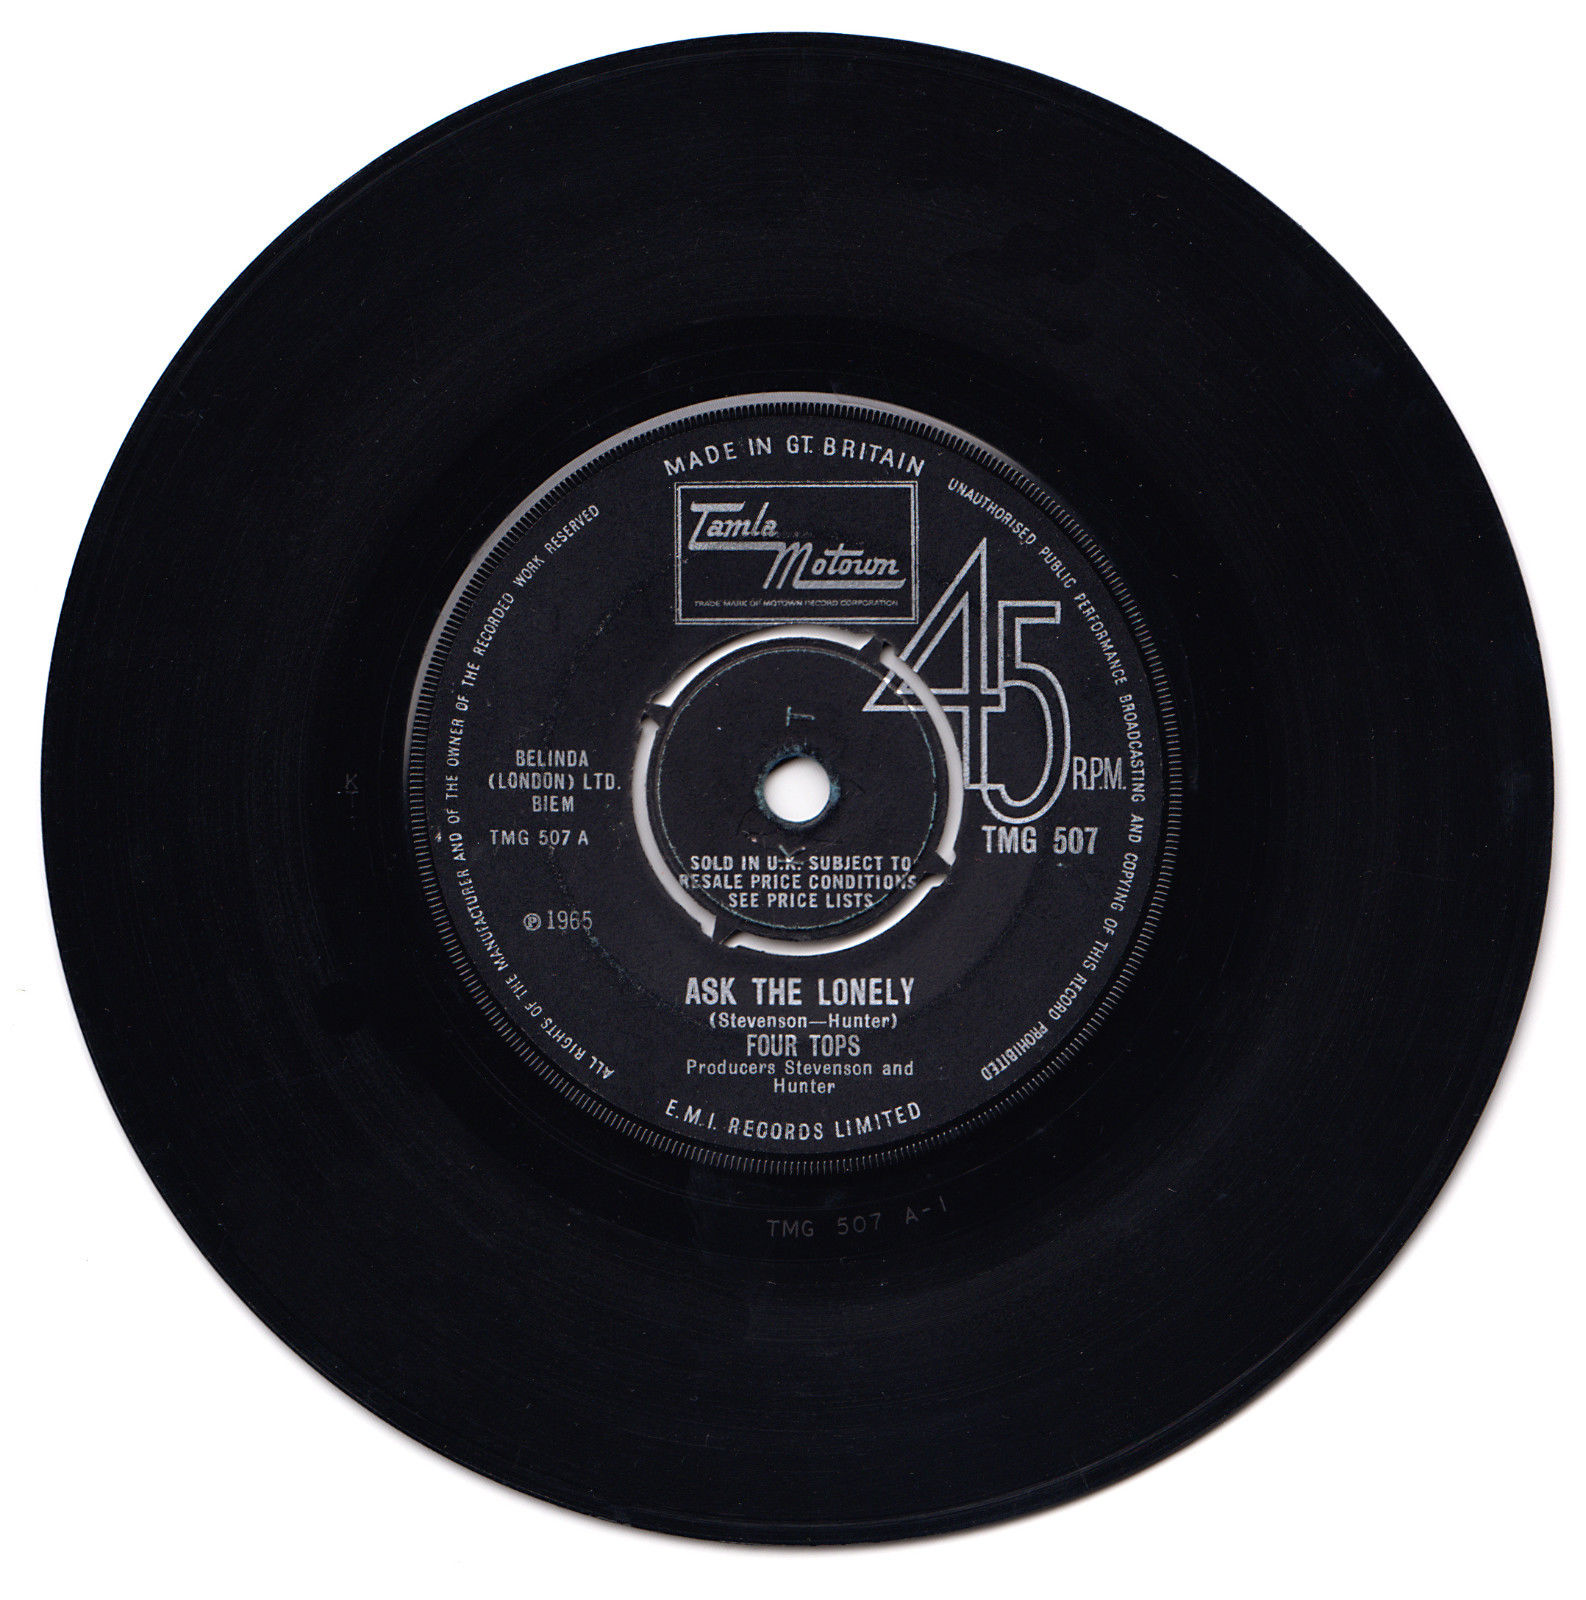 TMG 507 - TAMLA MOTOWN / Four Tops - Ask the Lonely